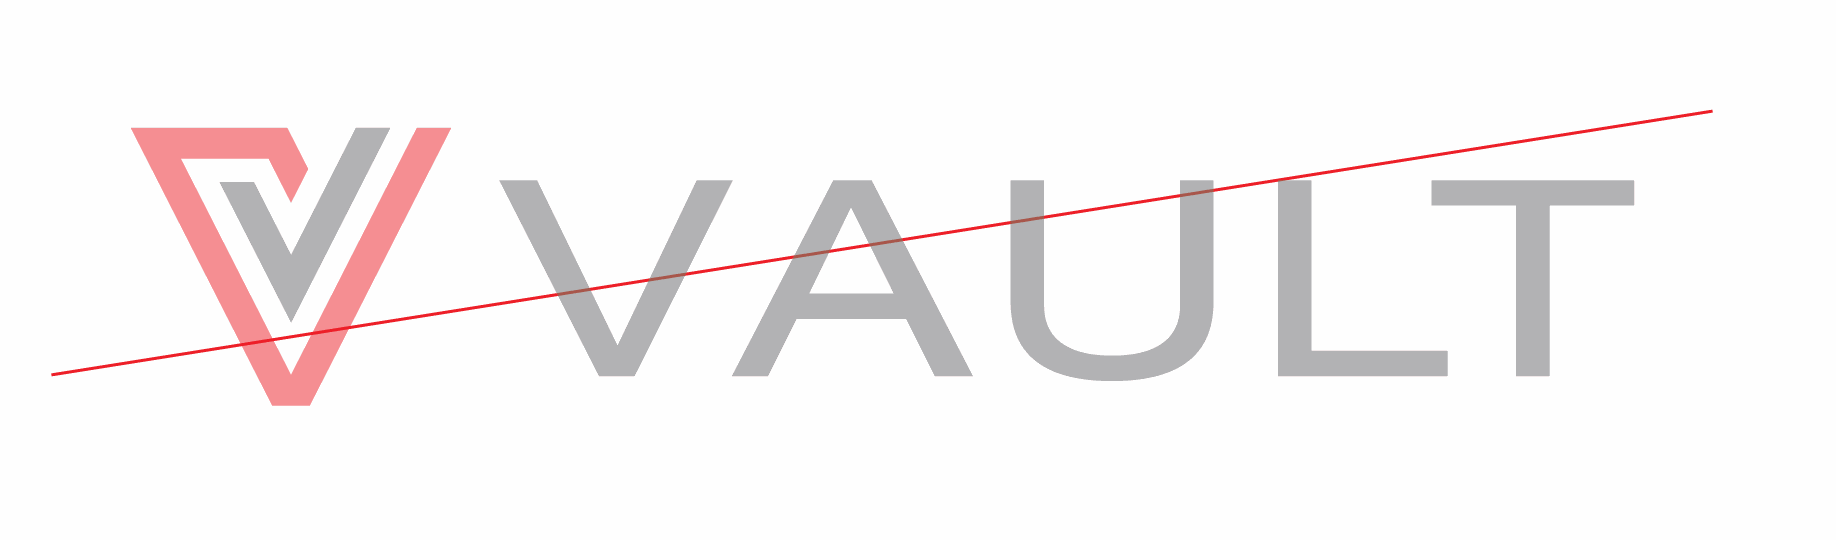 Vault logo misuse of transparency